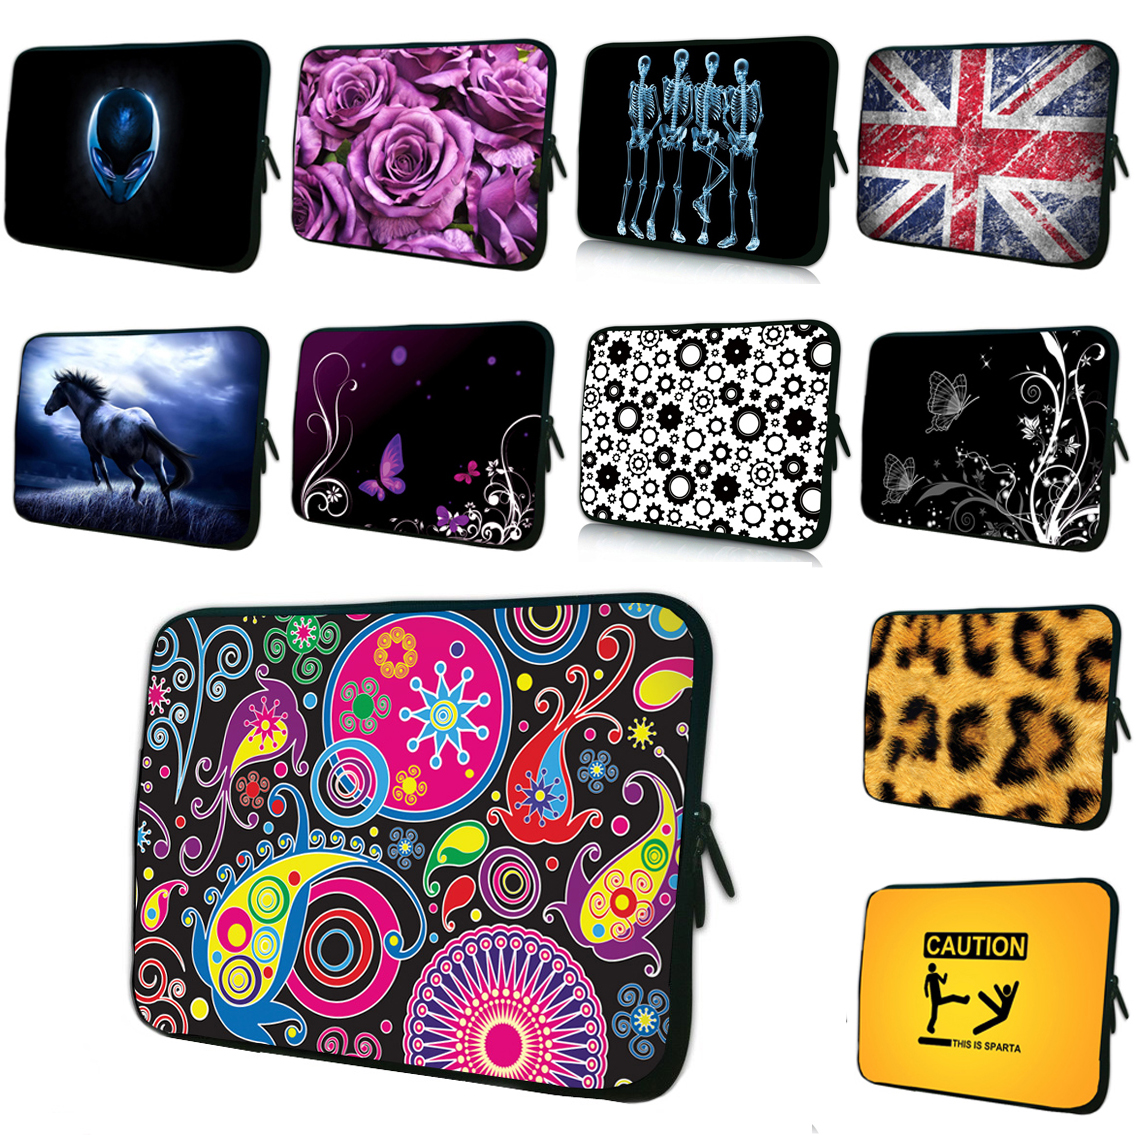 7 8 10.1 11.6 12 Netbook Inner Cases For Samsung Apple Lenovo Acer Universal 13 13.3 14 15 16 17 Inch Protector Pouch Bags